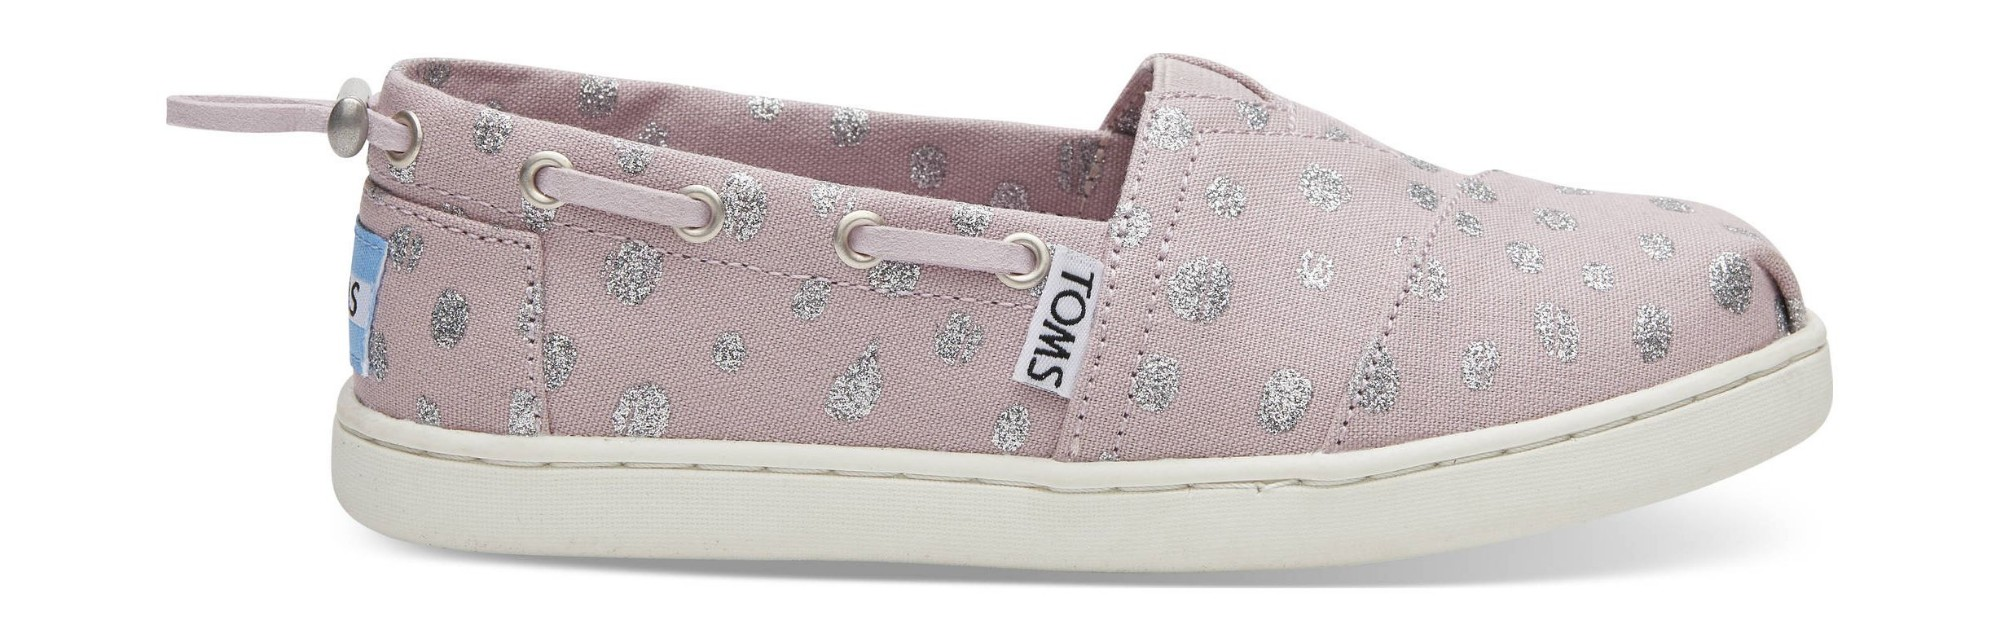 TOMS Metallic Torn Dots Junior's Bimini Burnished Lilac 32,5